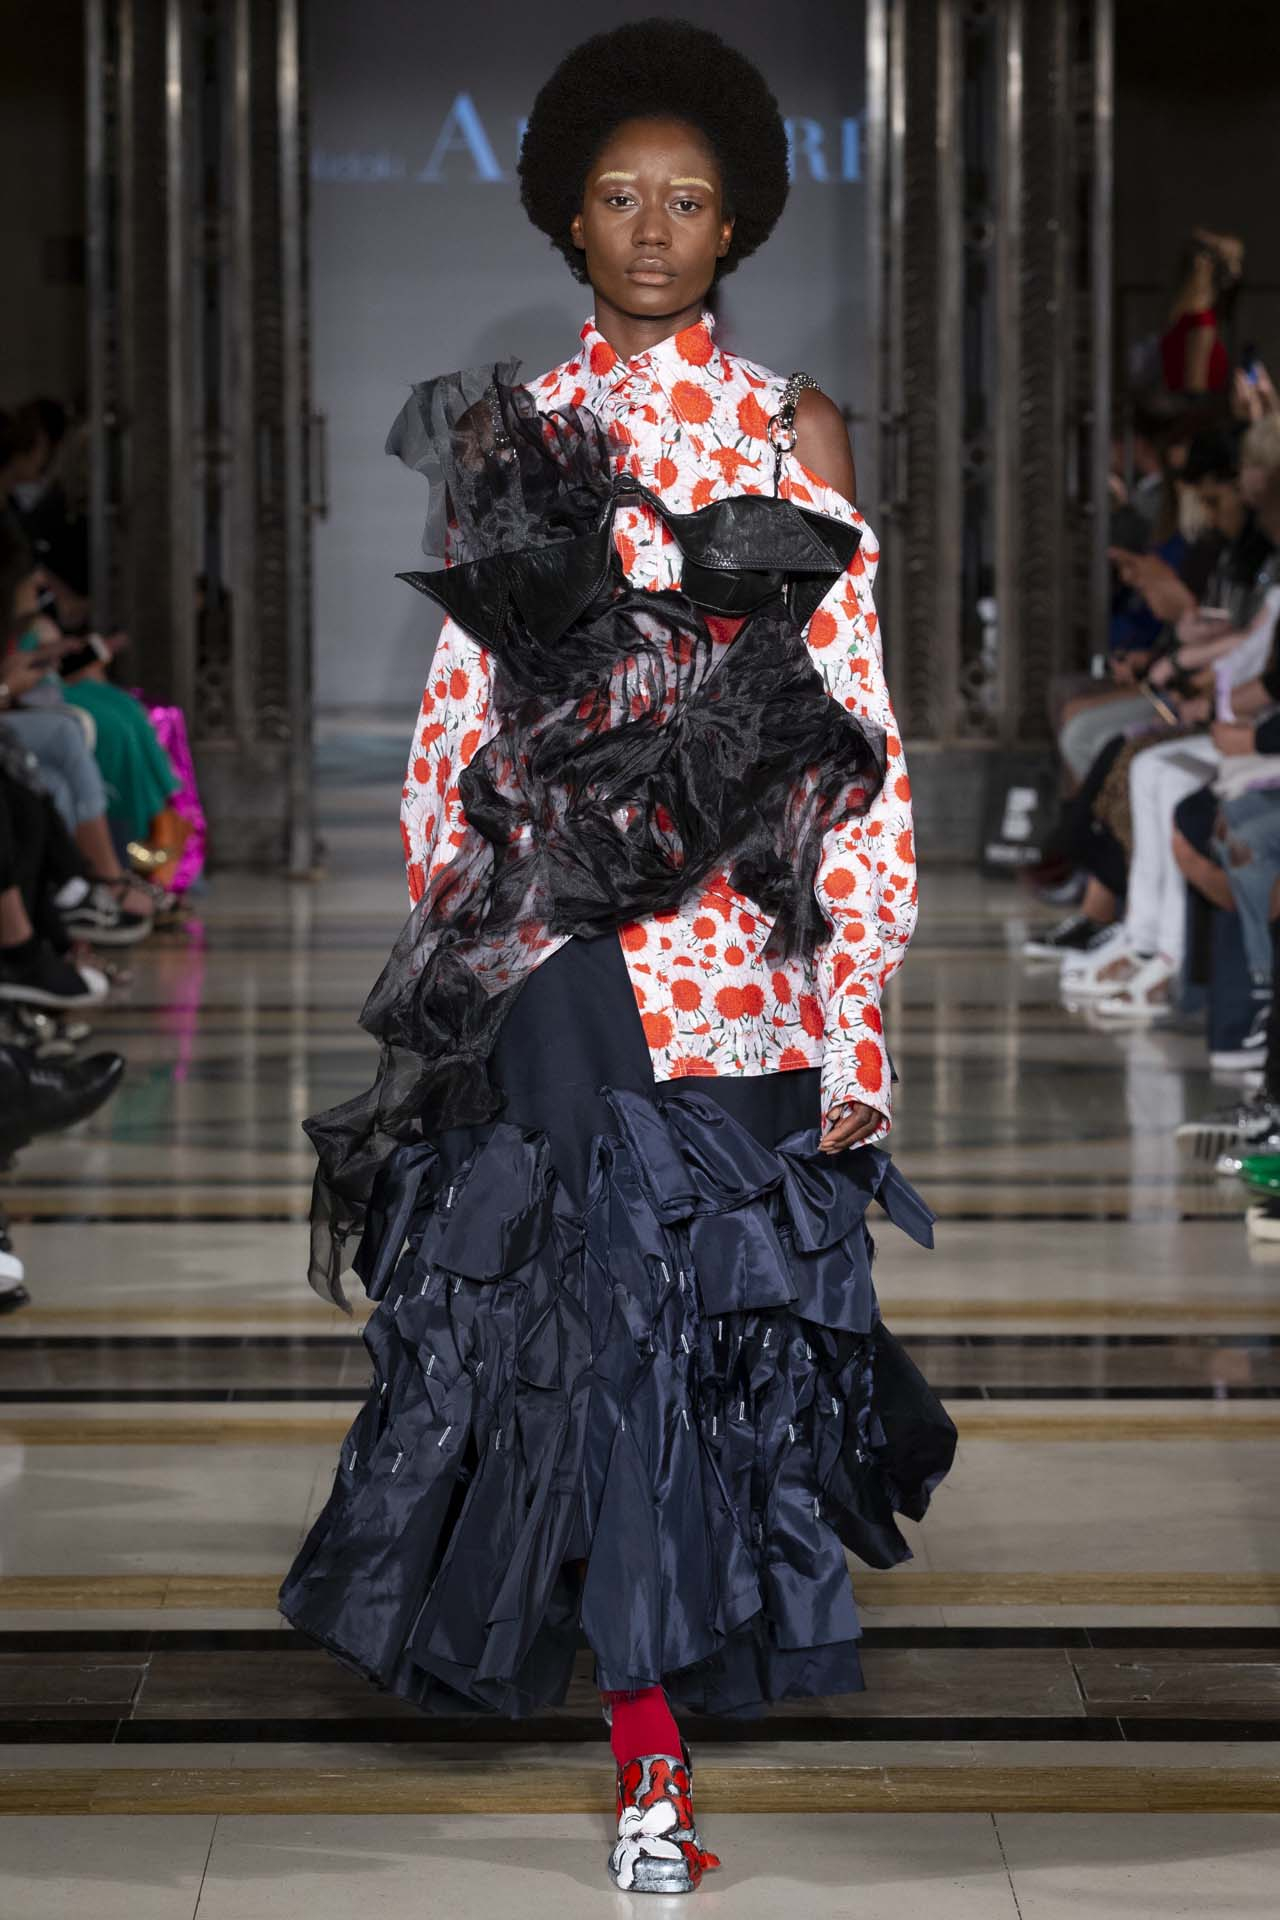 Fashion scout ss19 ones to watch aucarre (6)